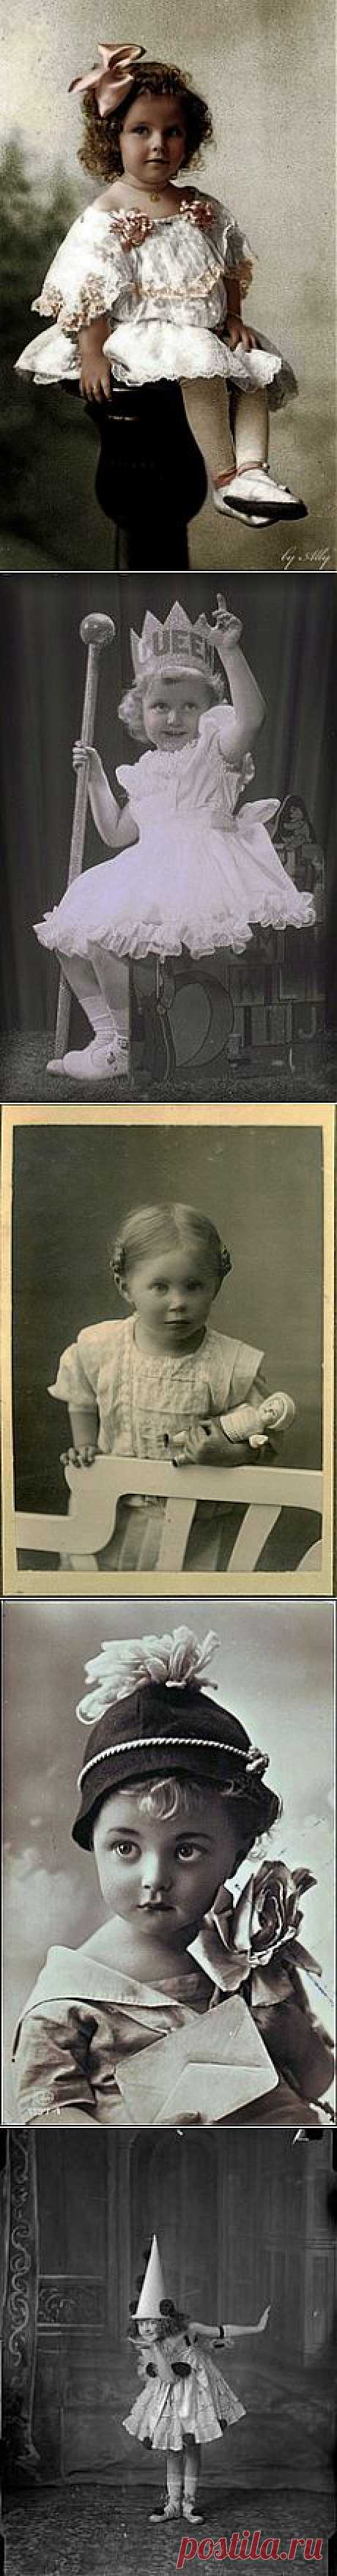 Pin by Mary Jane Chadbourne on Vintage Photos 2